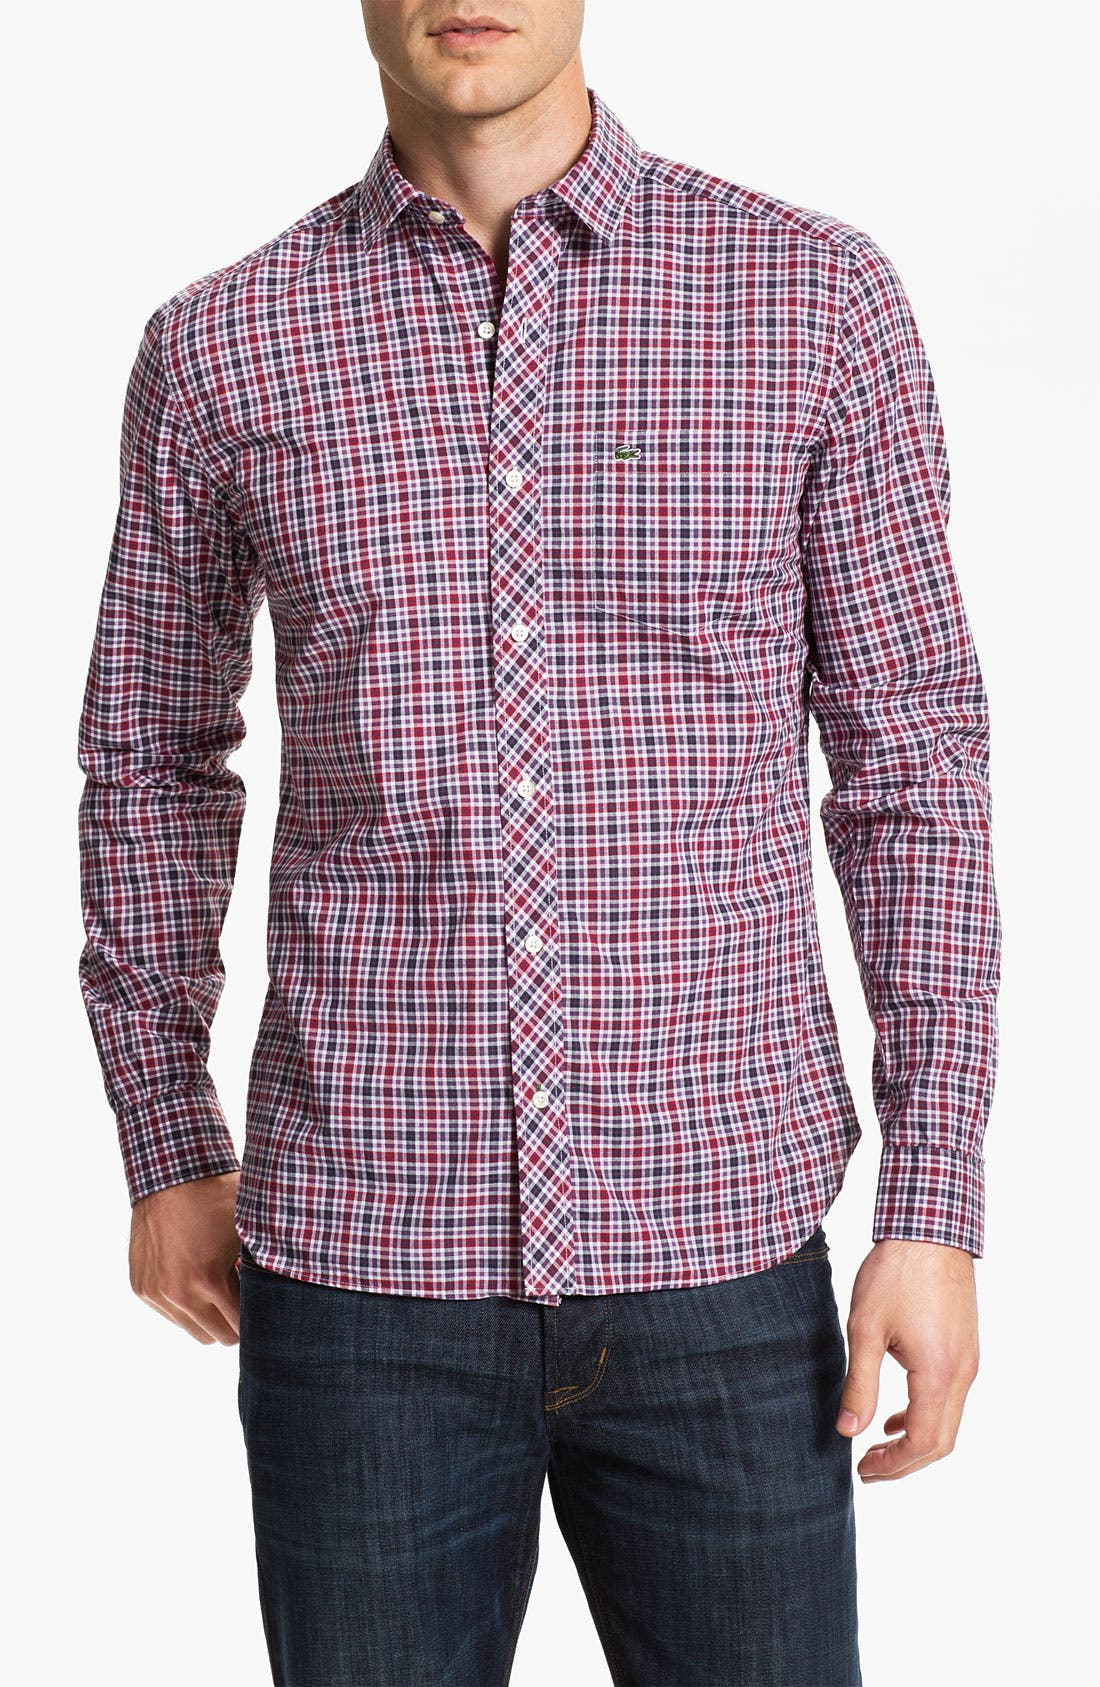 Main Image - Lacoste Slim Fit Plaid Sport Shirt